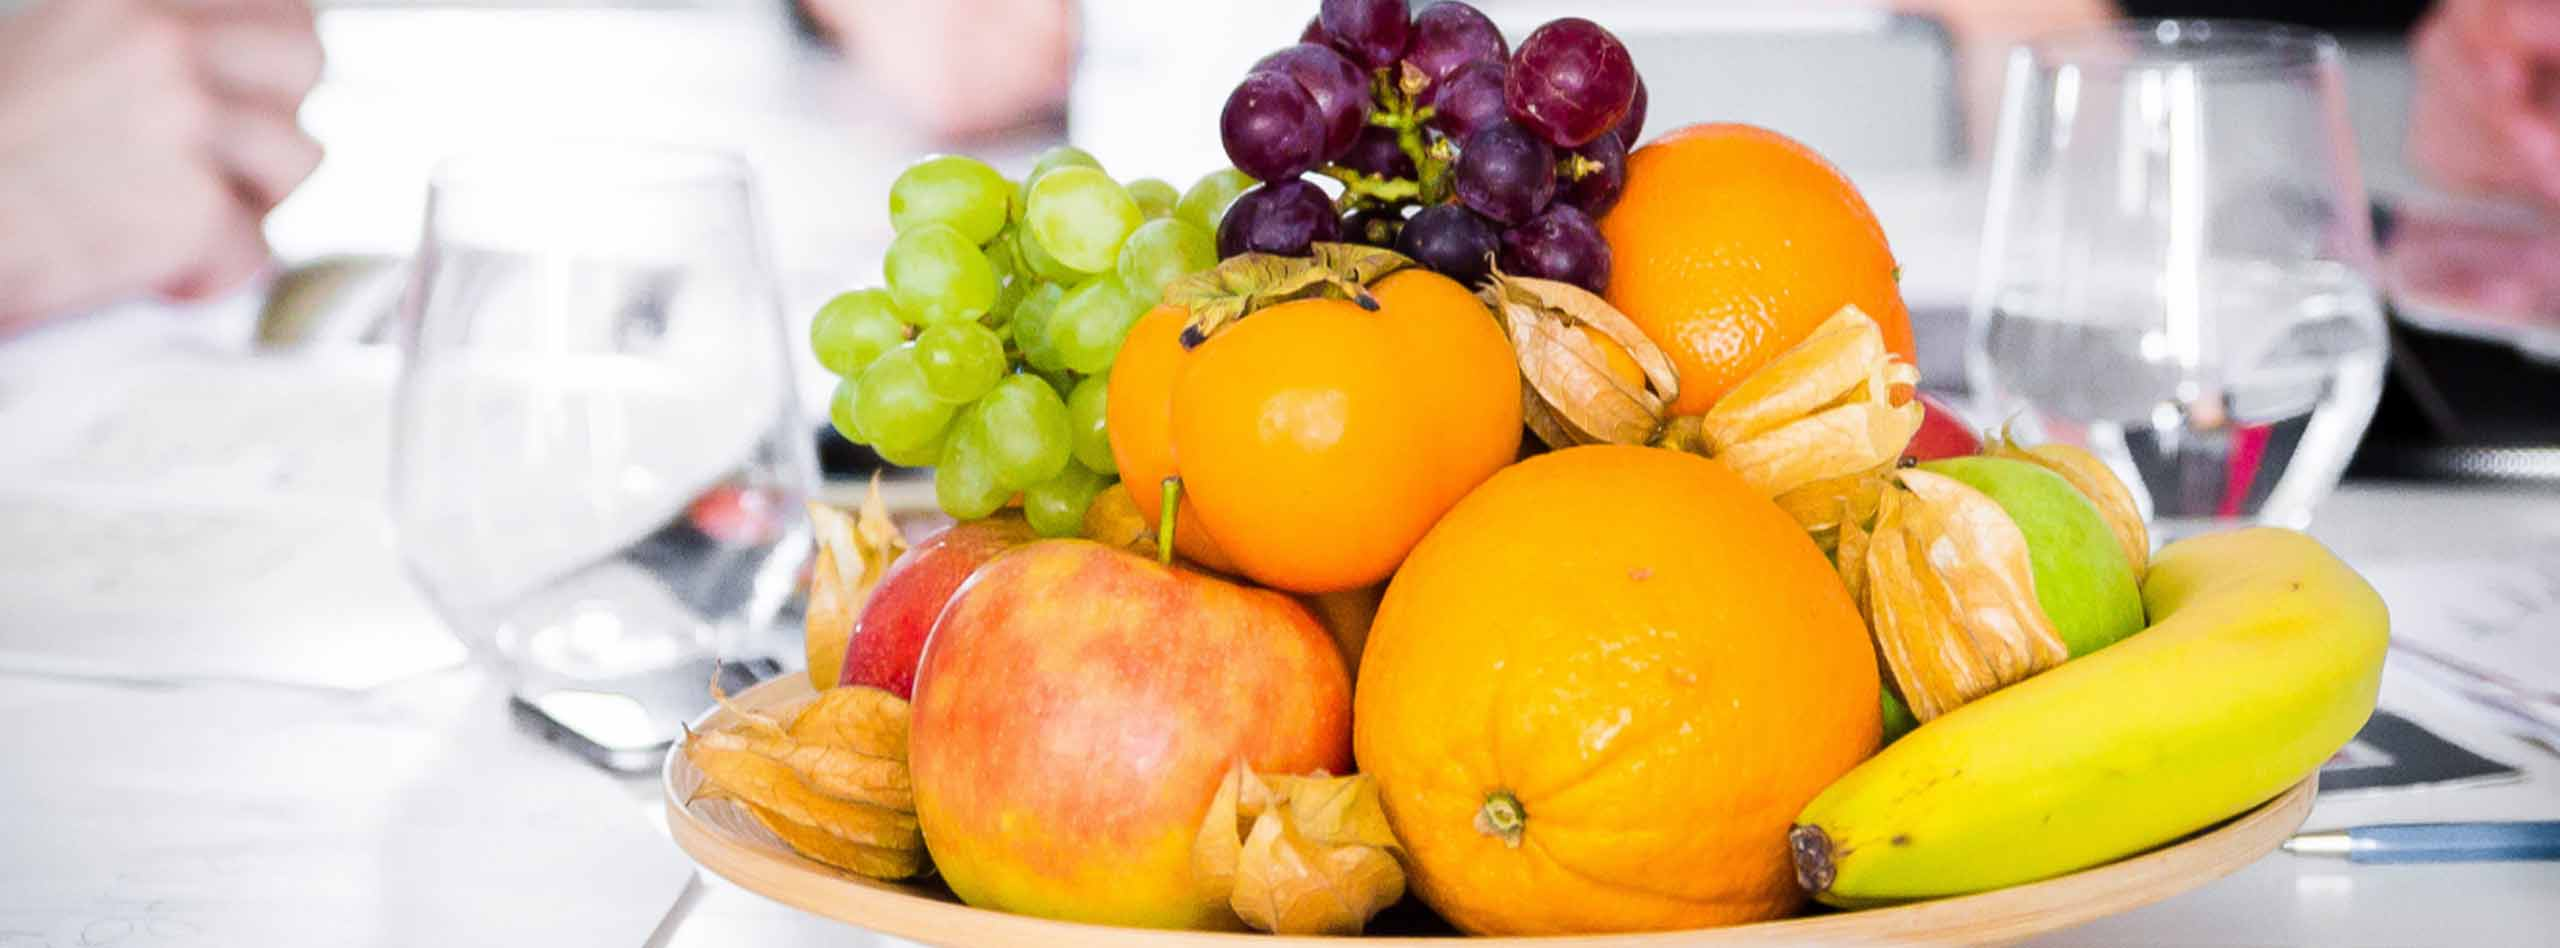 How to promote healthy eating in the workplace